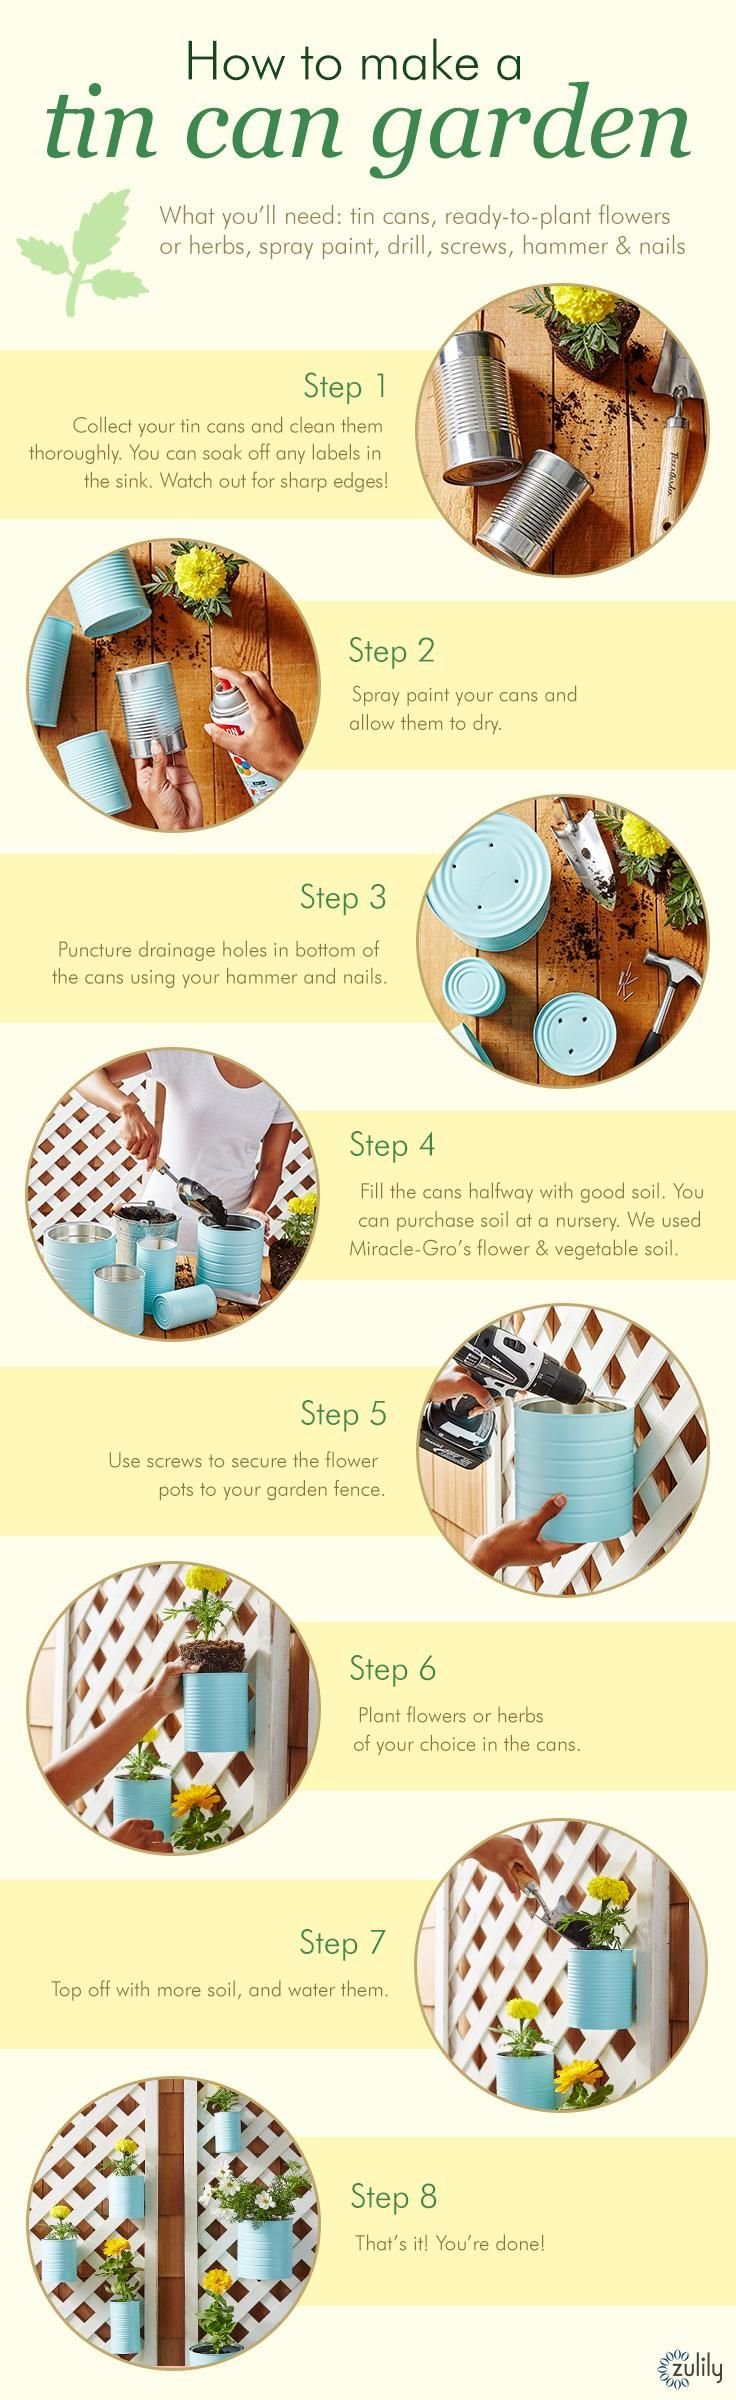 Learn how to make your own tin can garden in these 8 easy steps